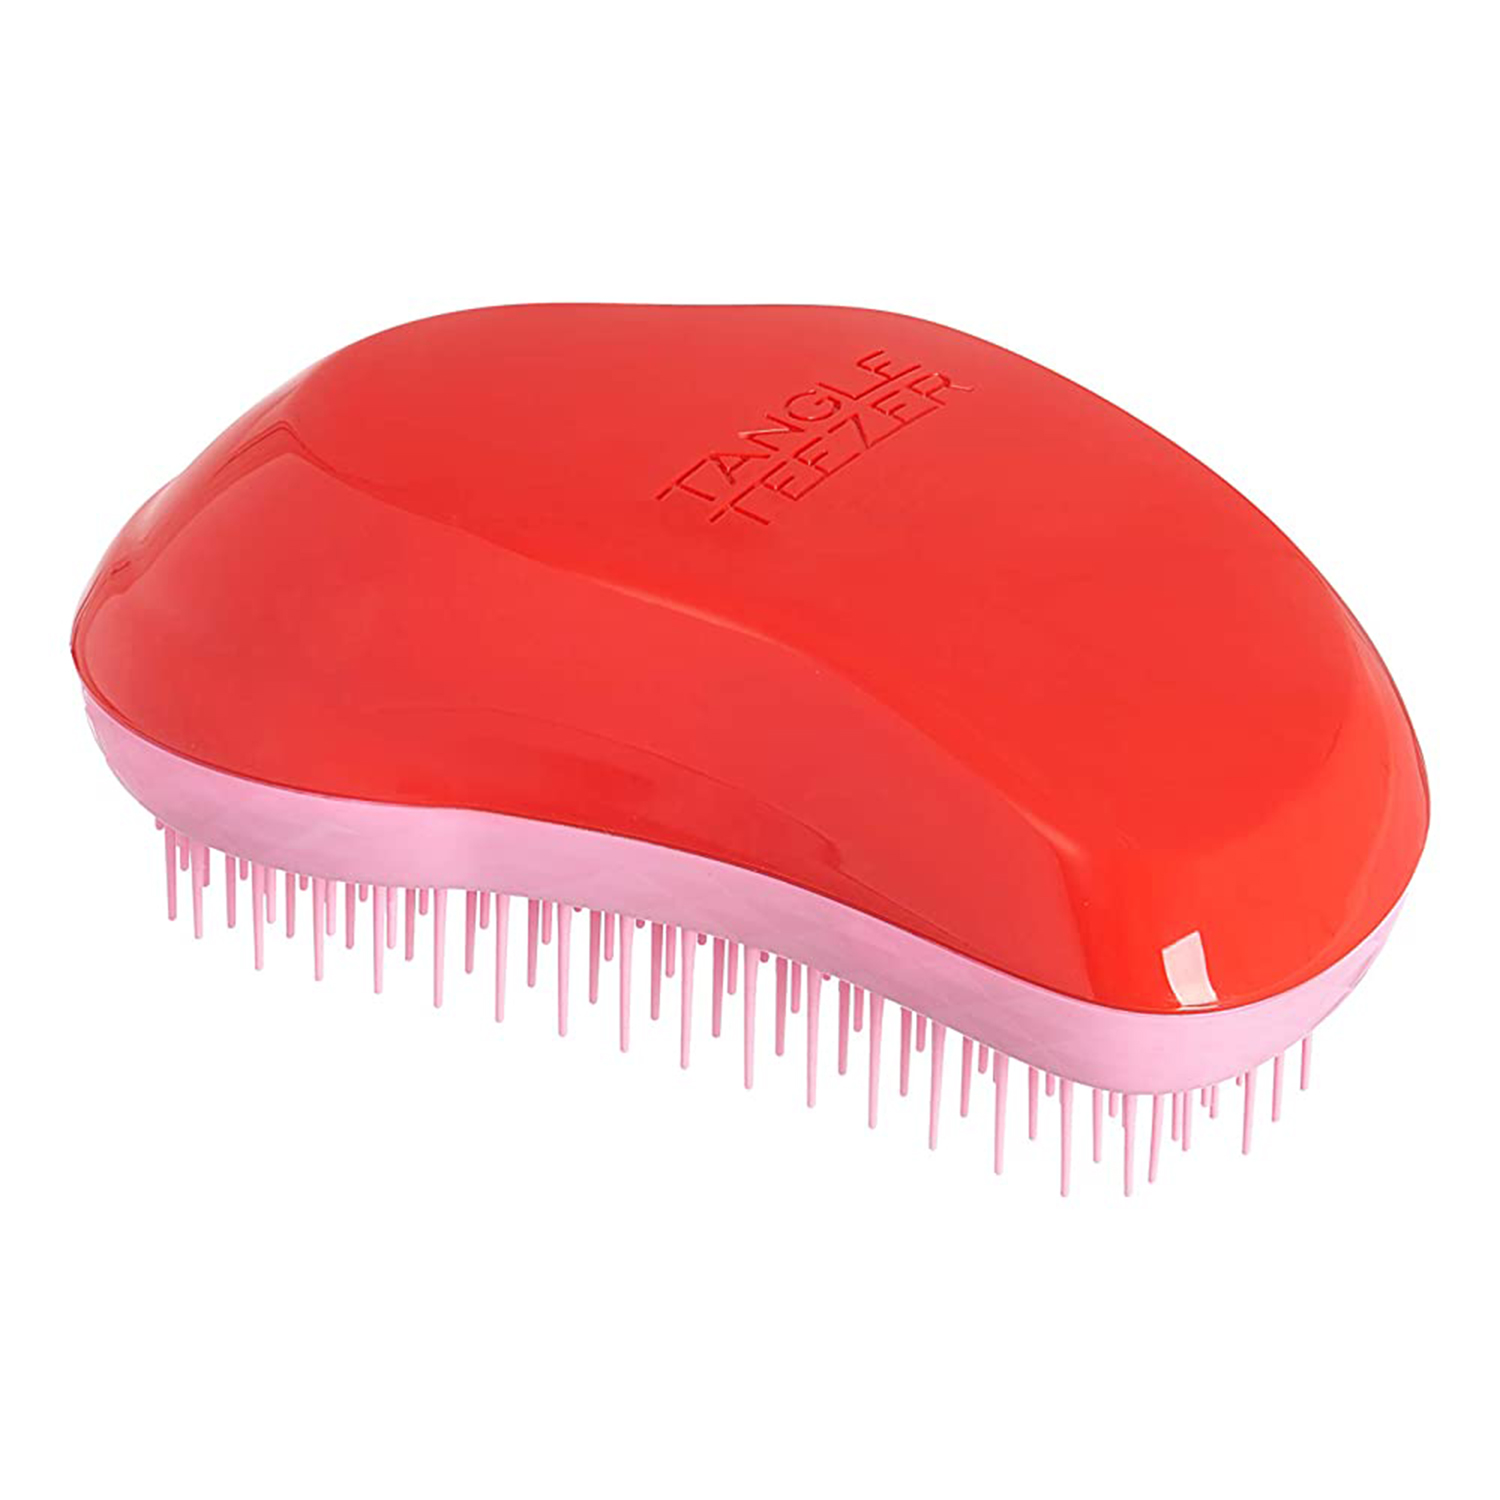 Tangle Teezer The Original Thick & Curly